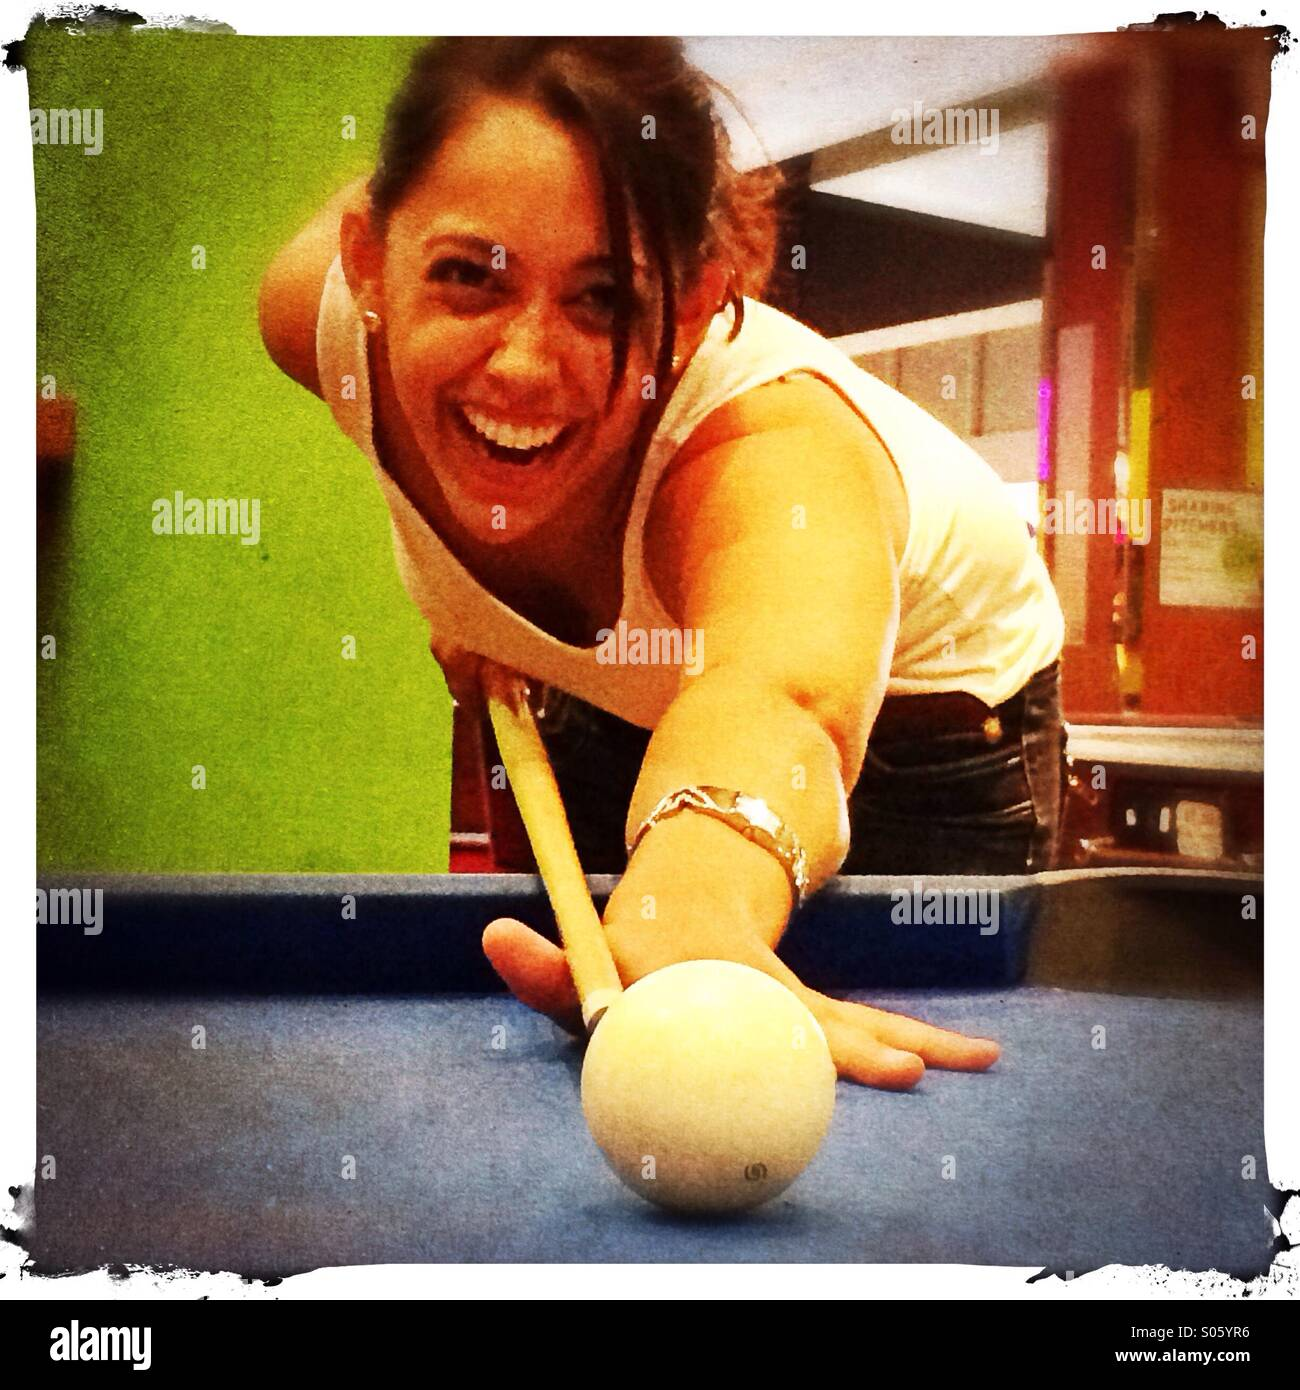 young-woman-playing-pool-uk-S05YR6.jpg